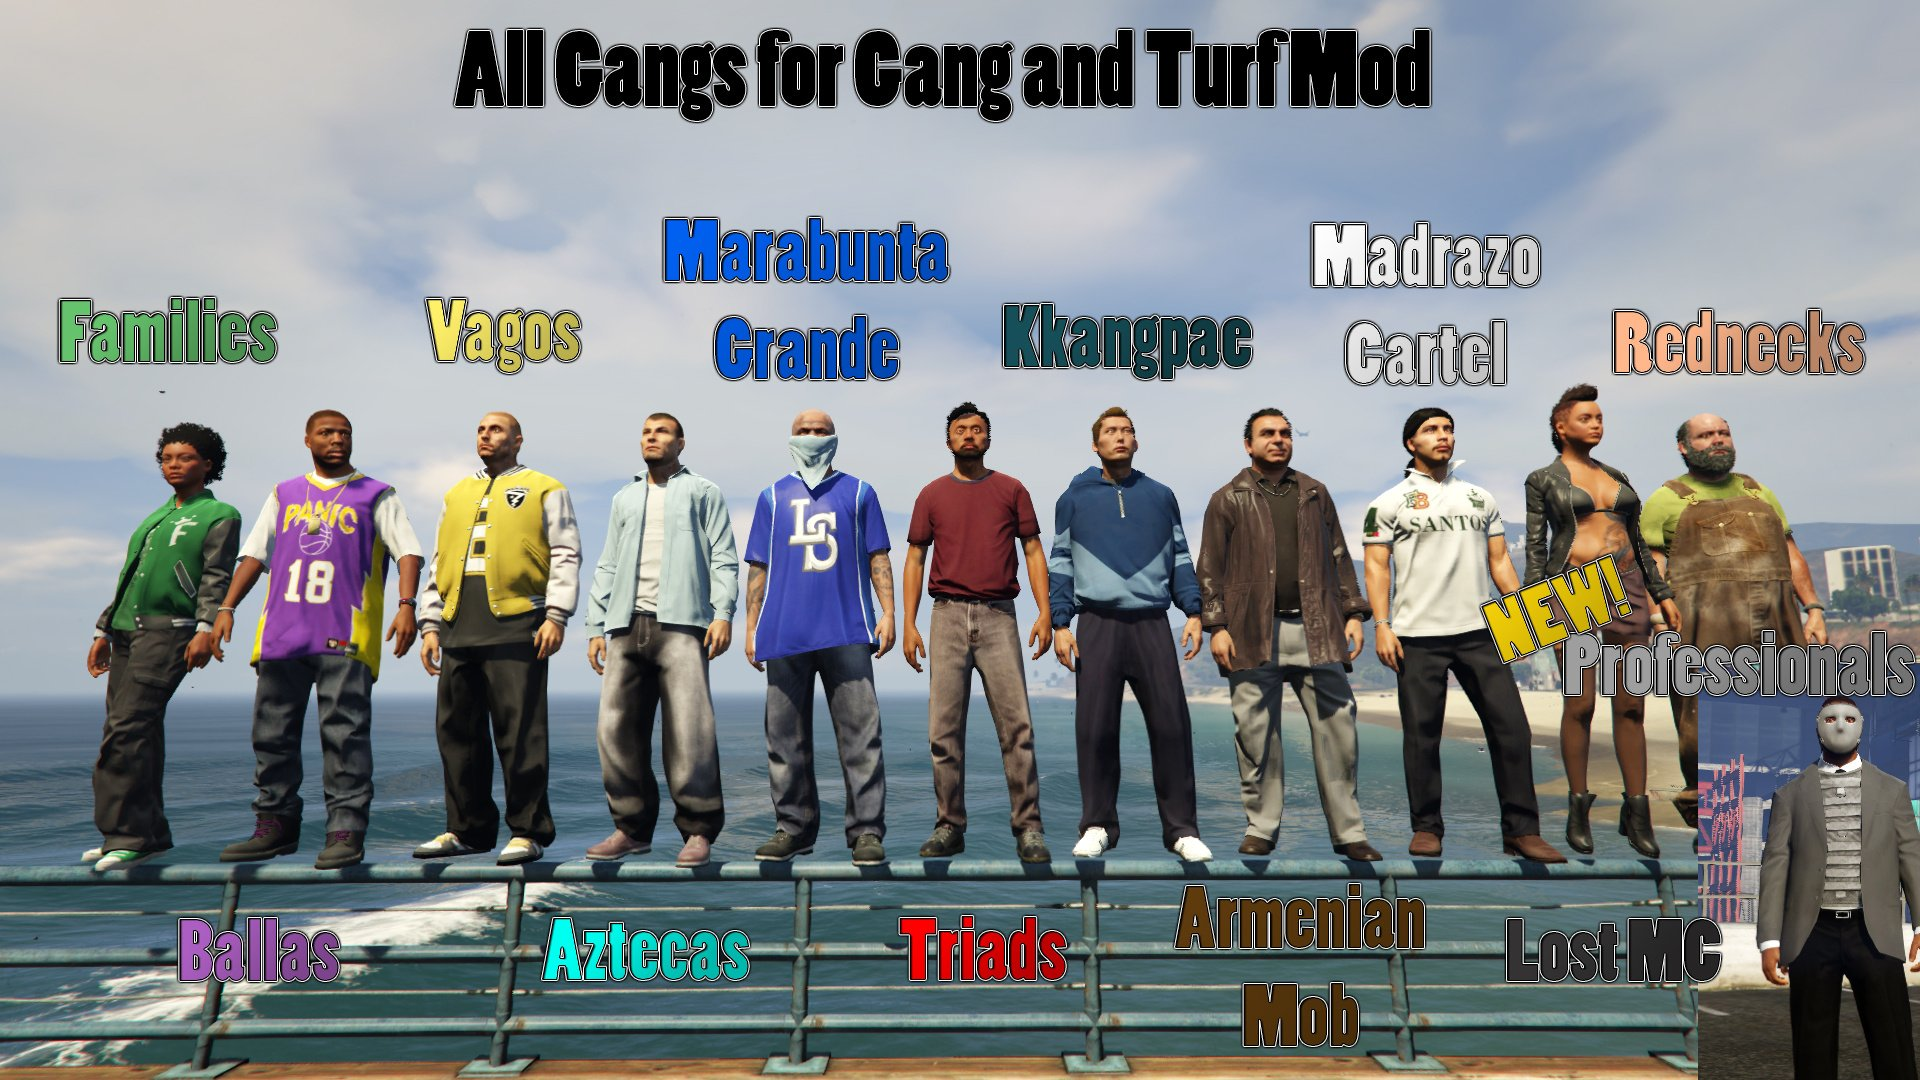 What did the GTA gang do? 54